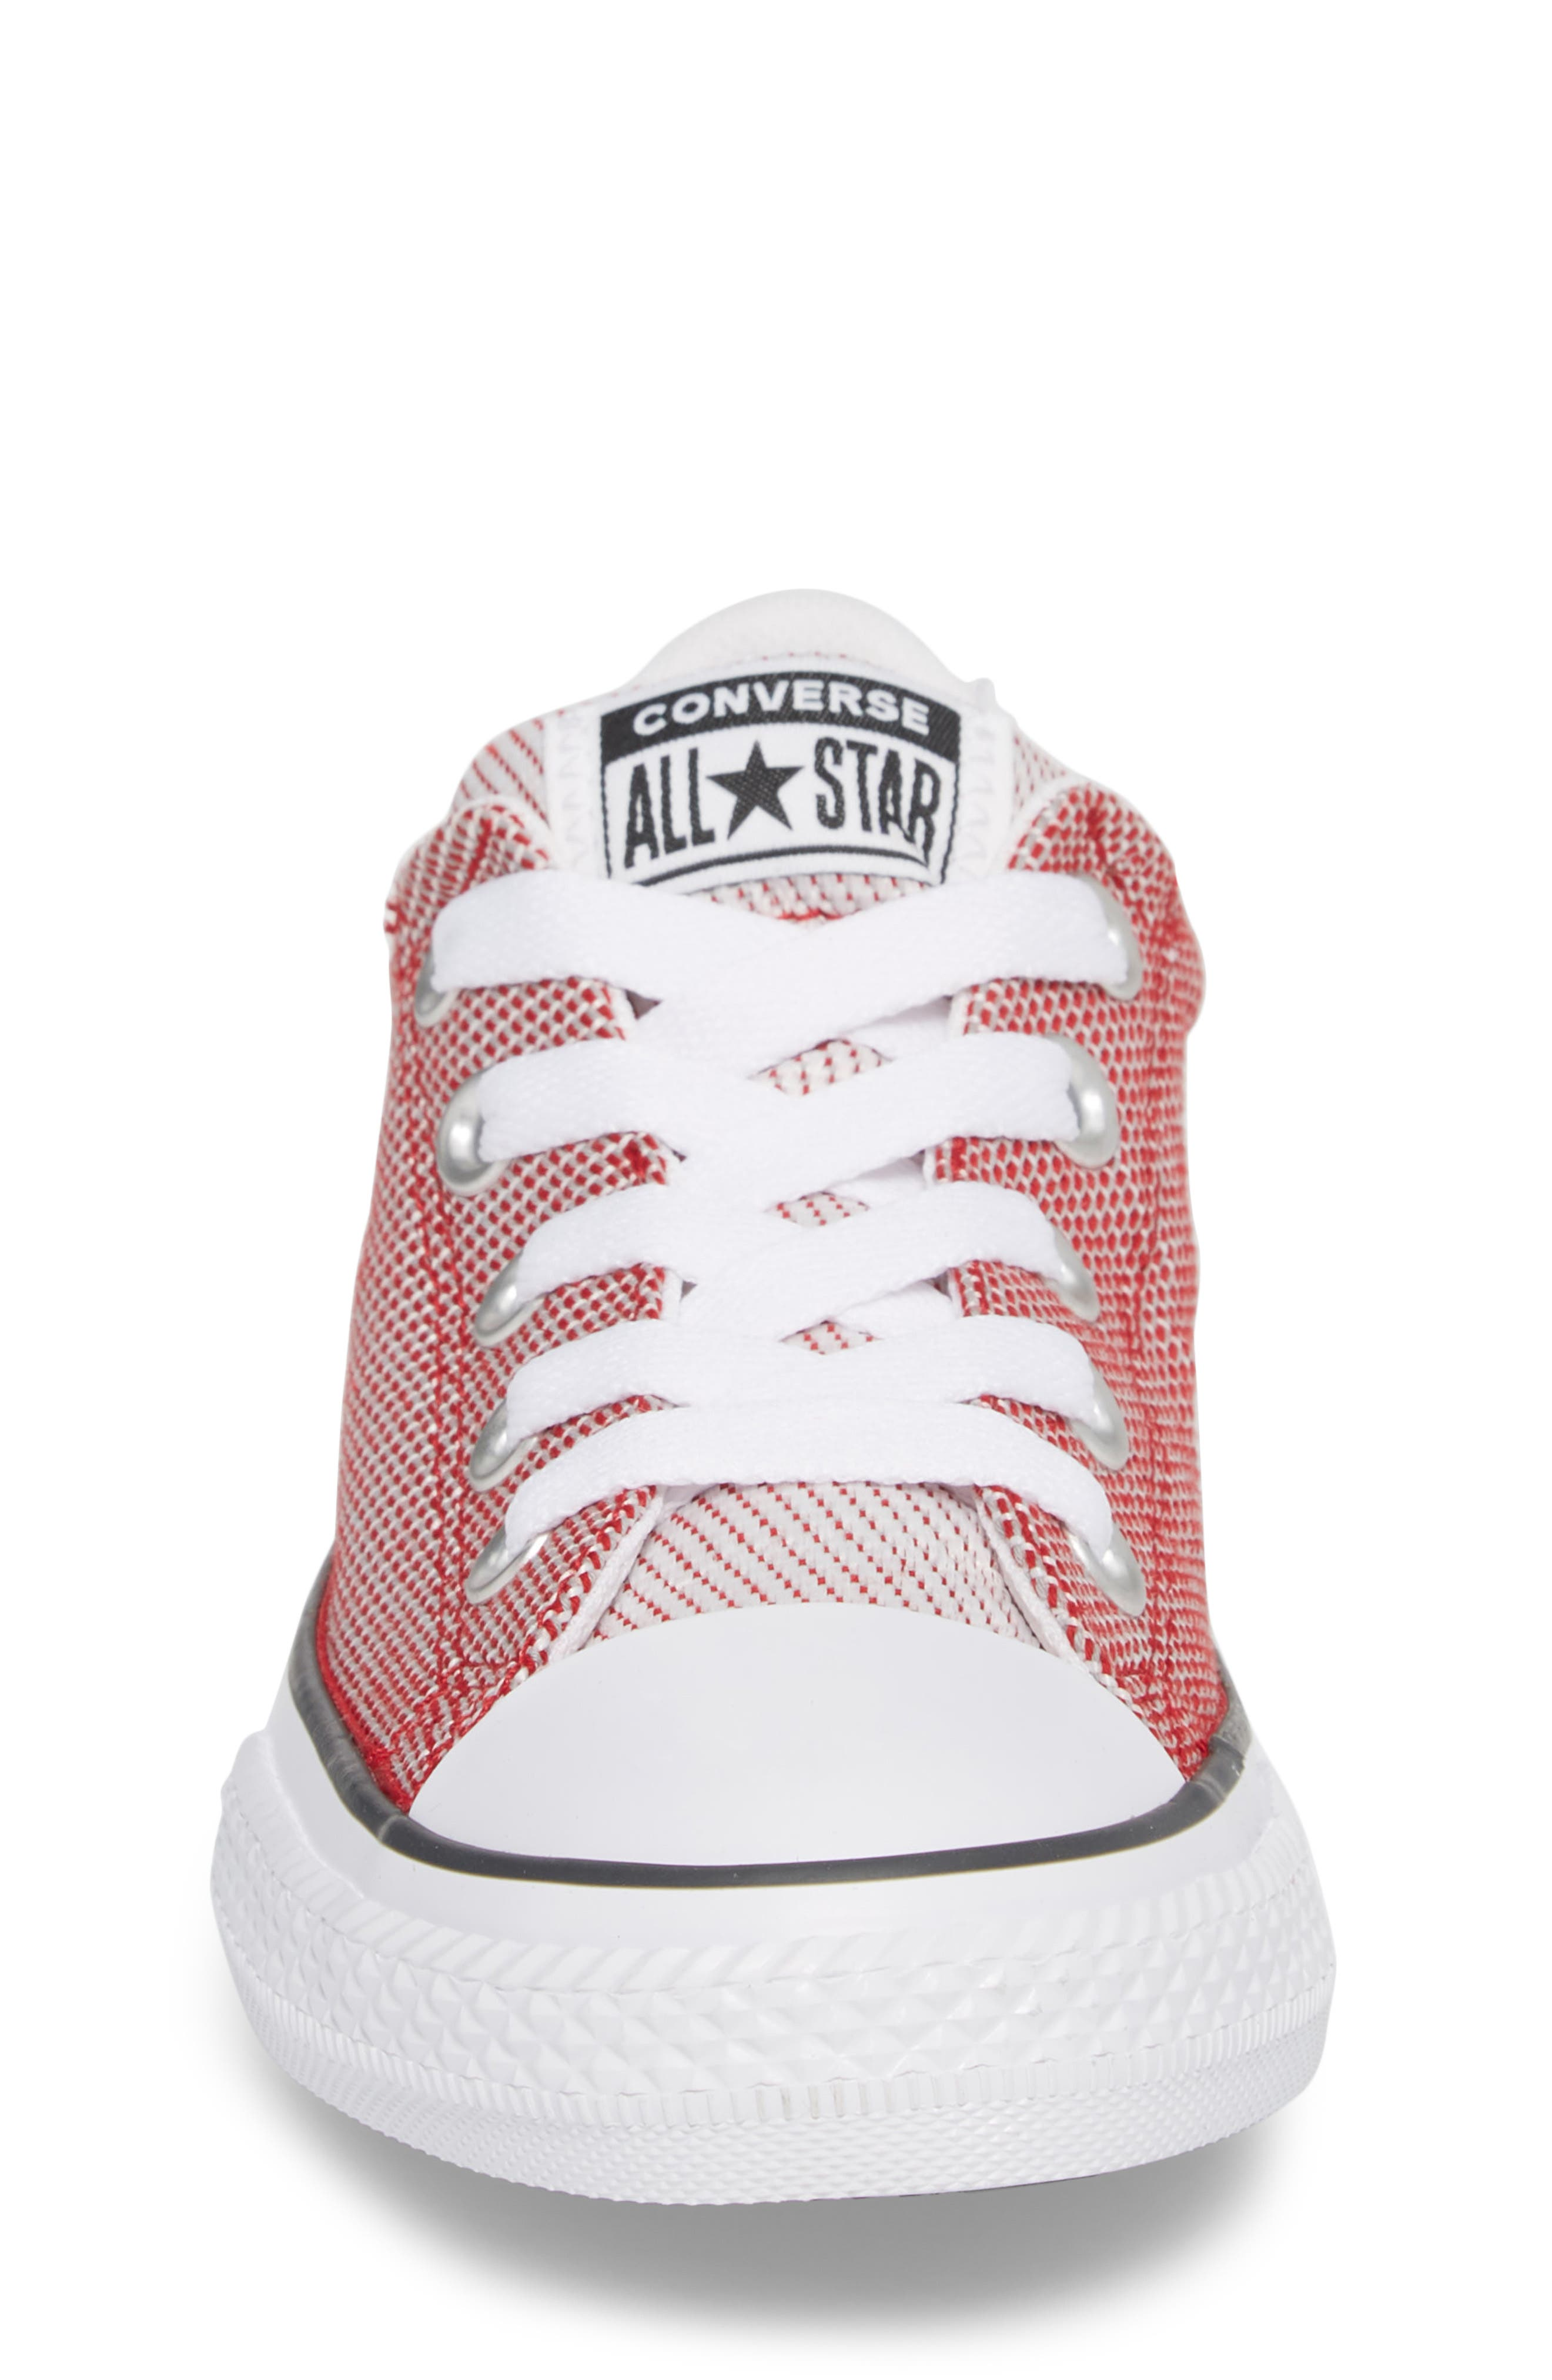 Chuck Taylor<sup>®</sup> All Star<sup>®</sup> Woven Street Sneaker,                             Alternate thumbnail 4, color,                             Gym Red